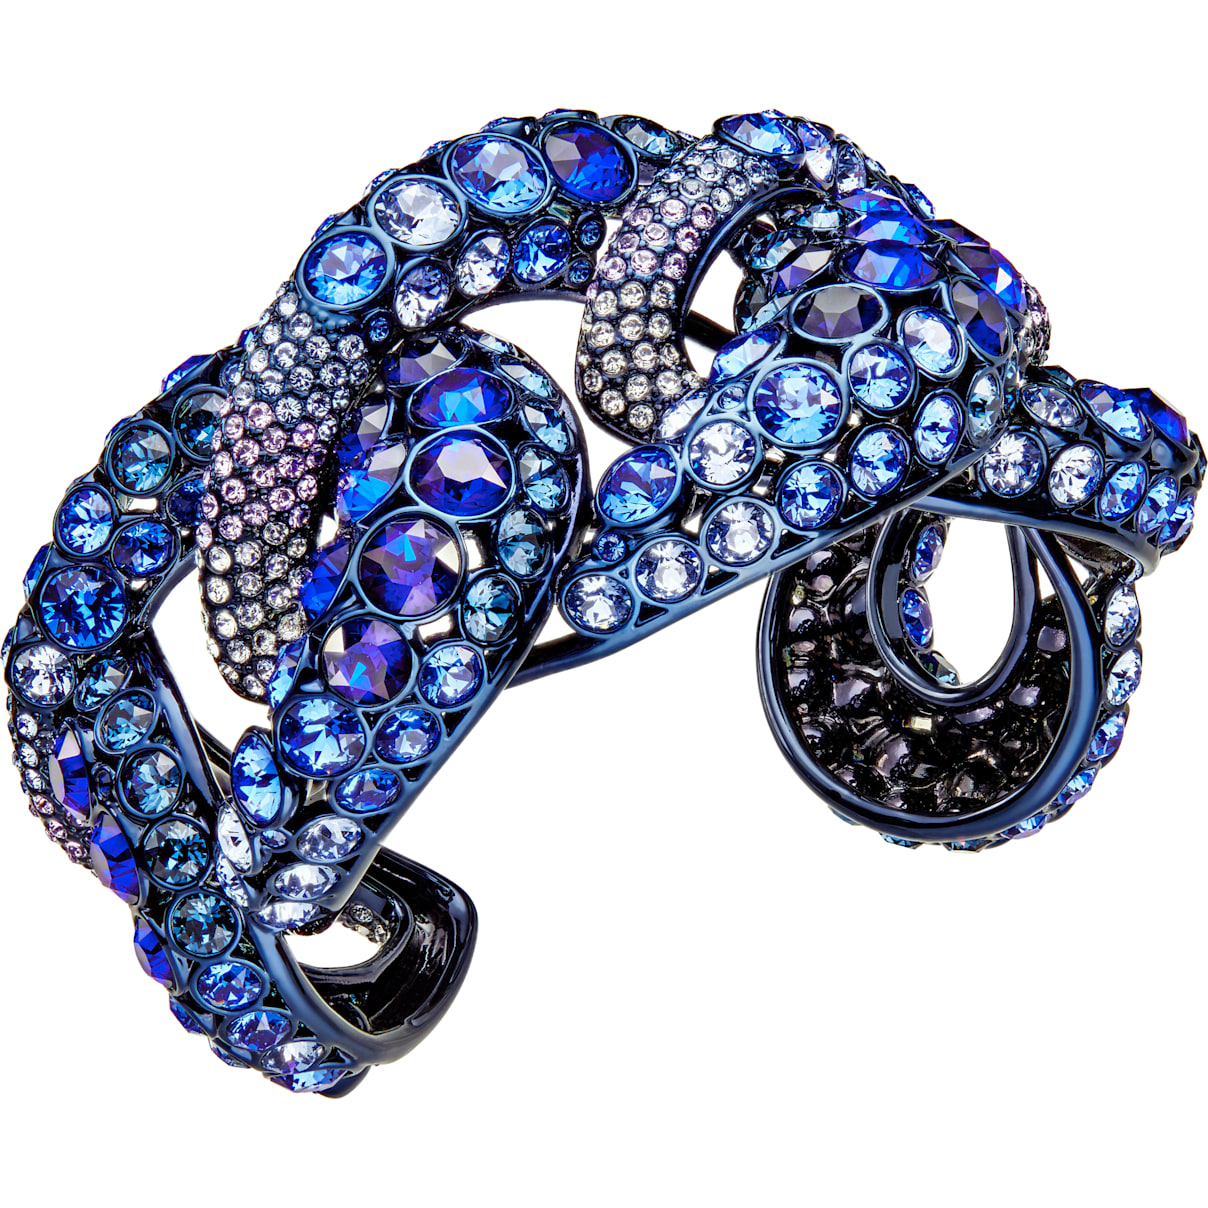 Swarovski Tabloid Cuff, Multi-colored, Blue PVD Coating